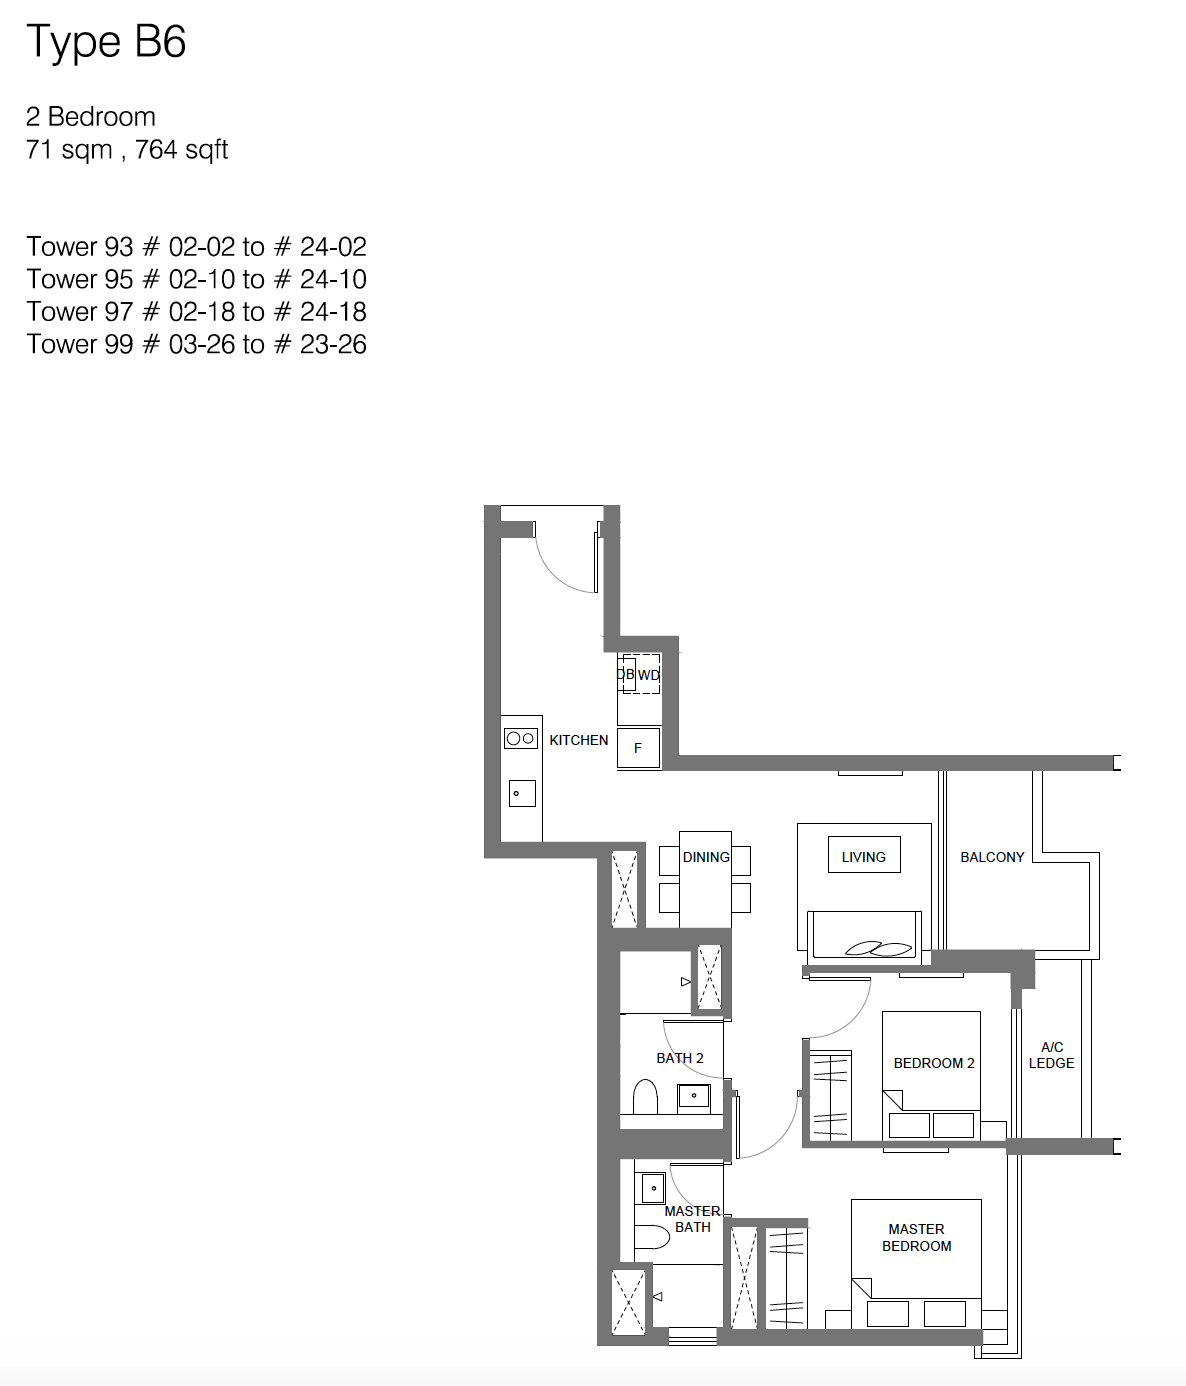 Principal Garden floor plan - 2 bedroom (type B6)